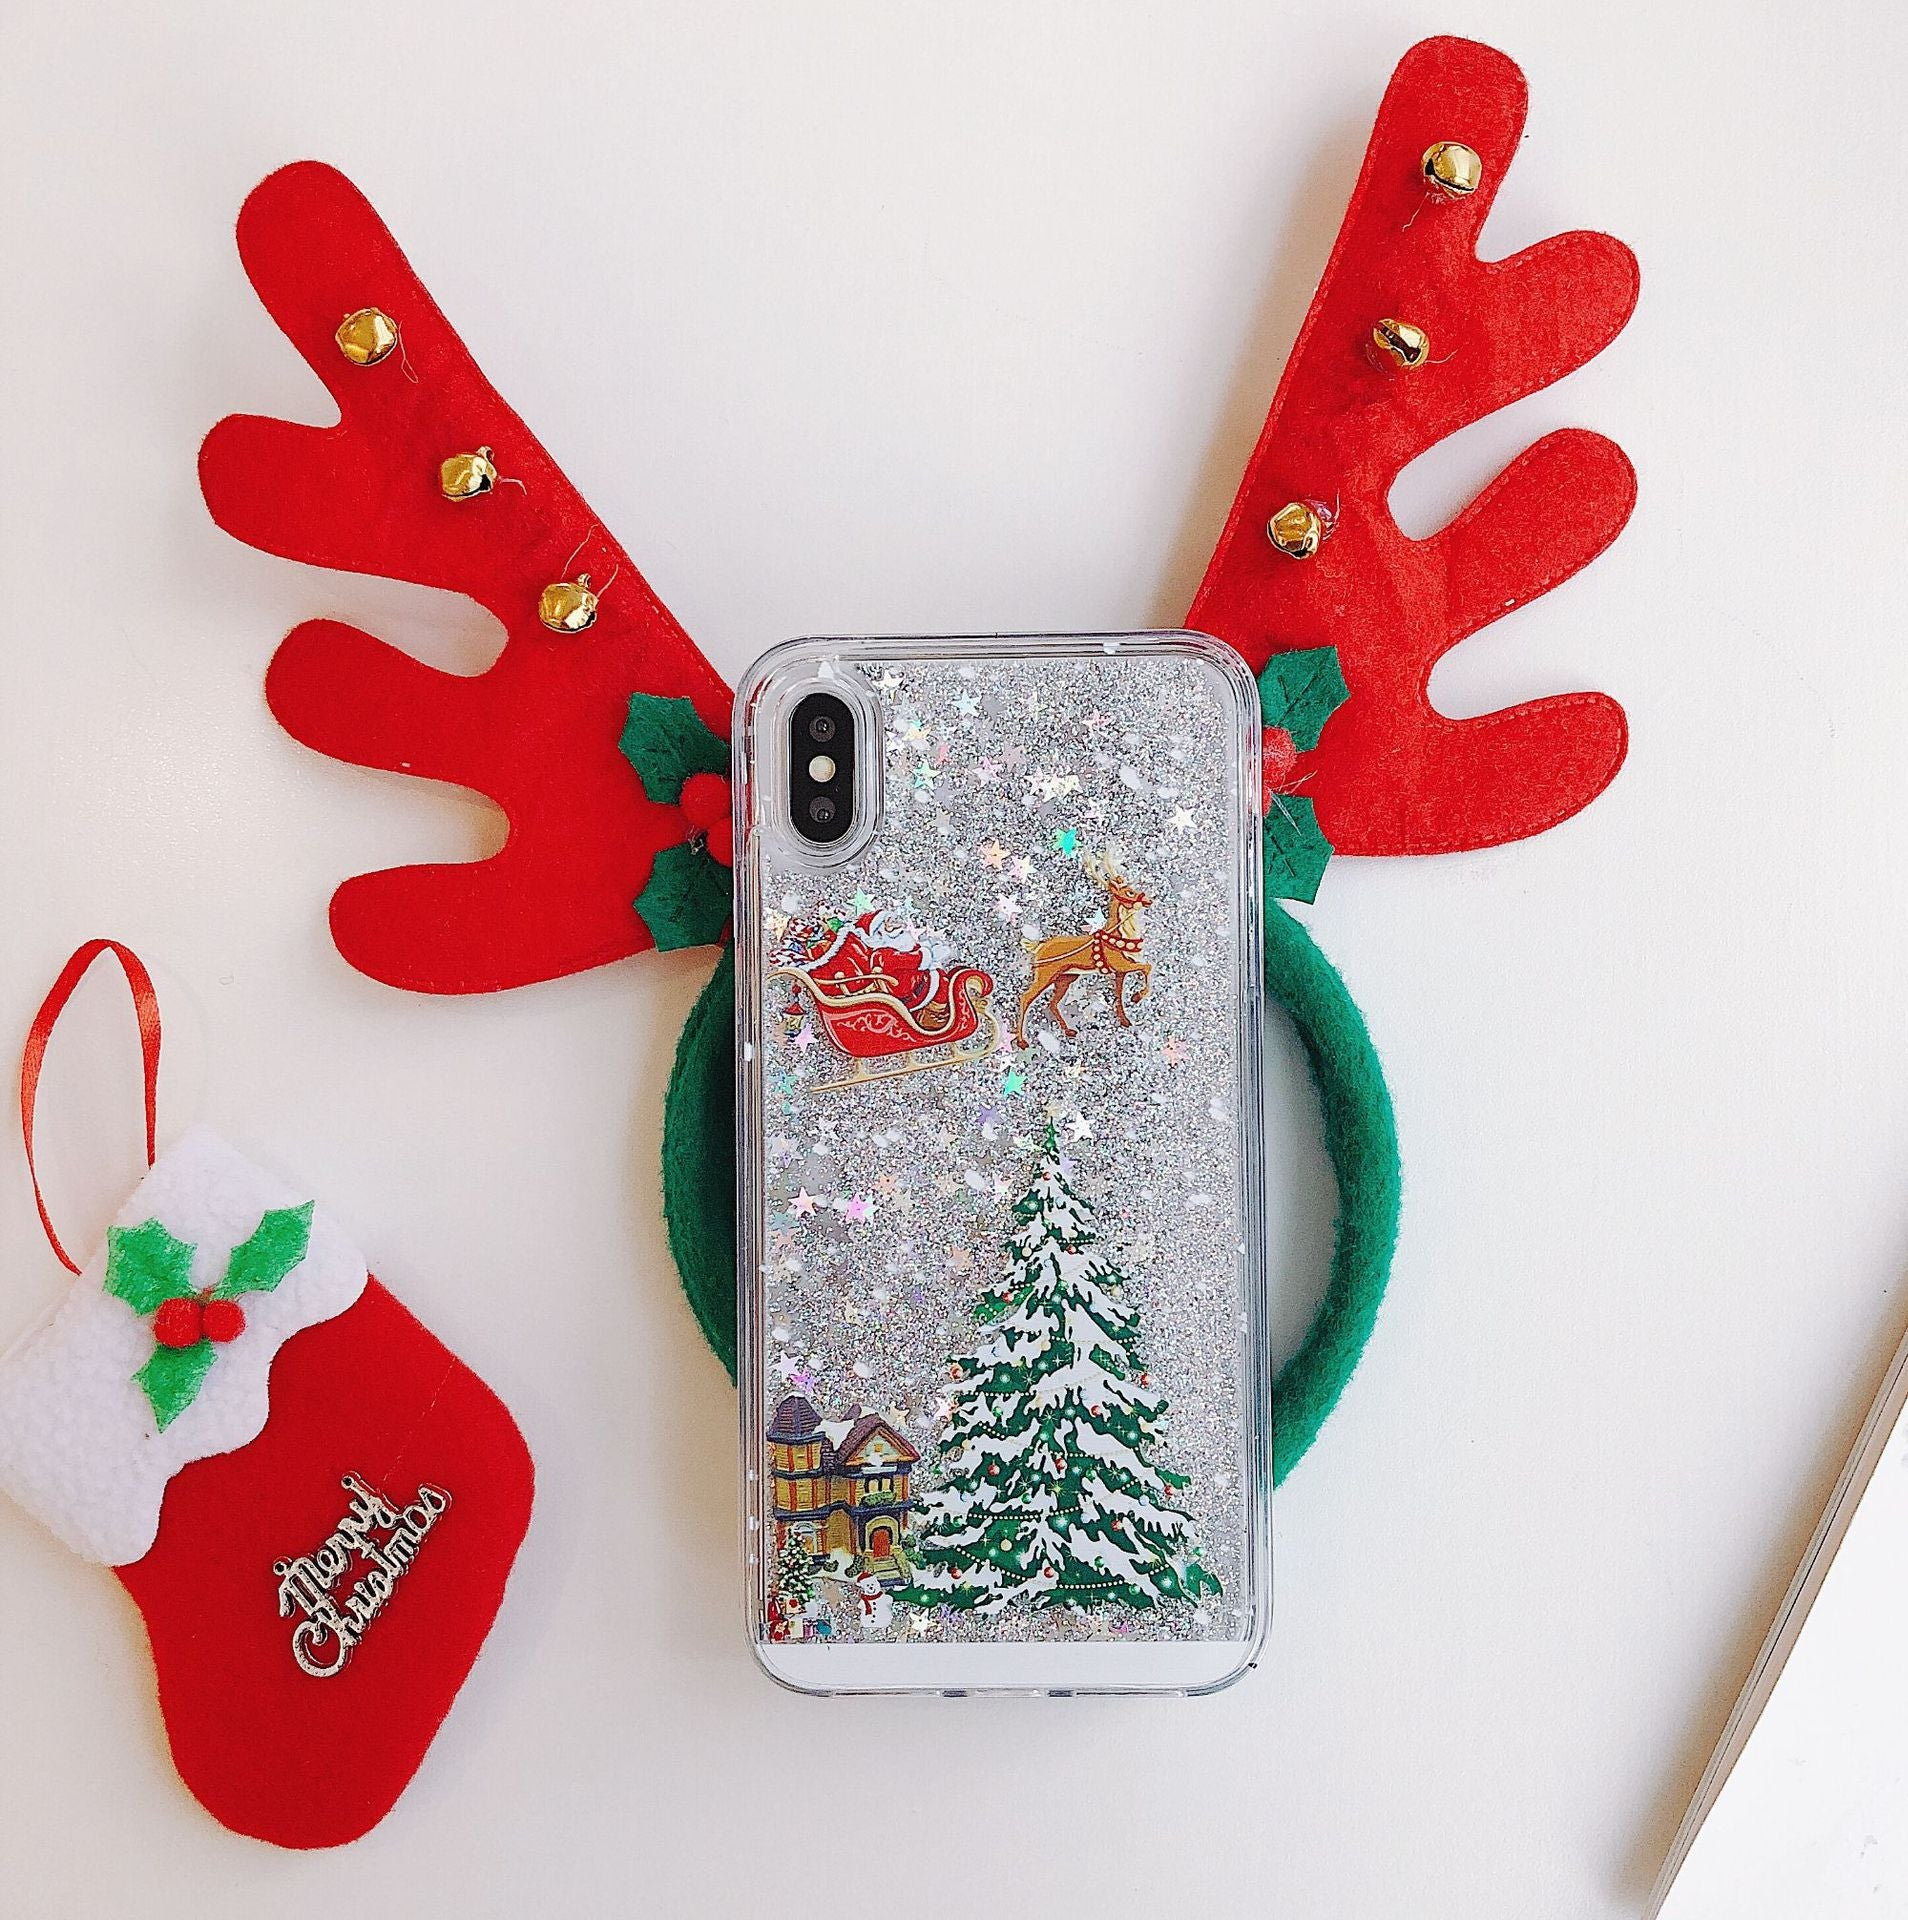 XMAS Powder Glitter iPhone Case